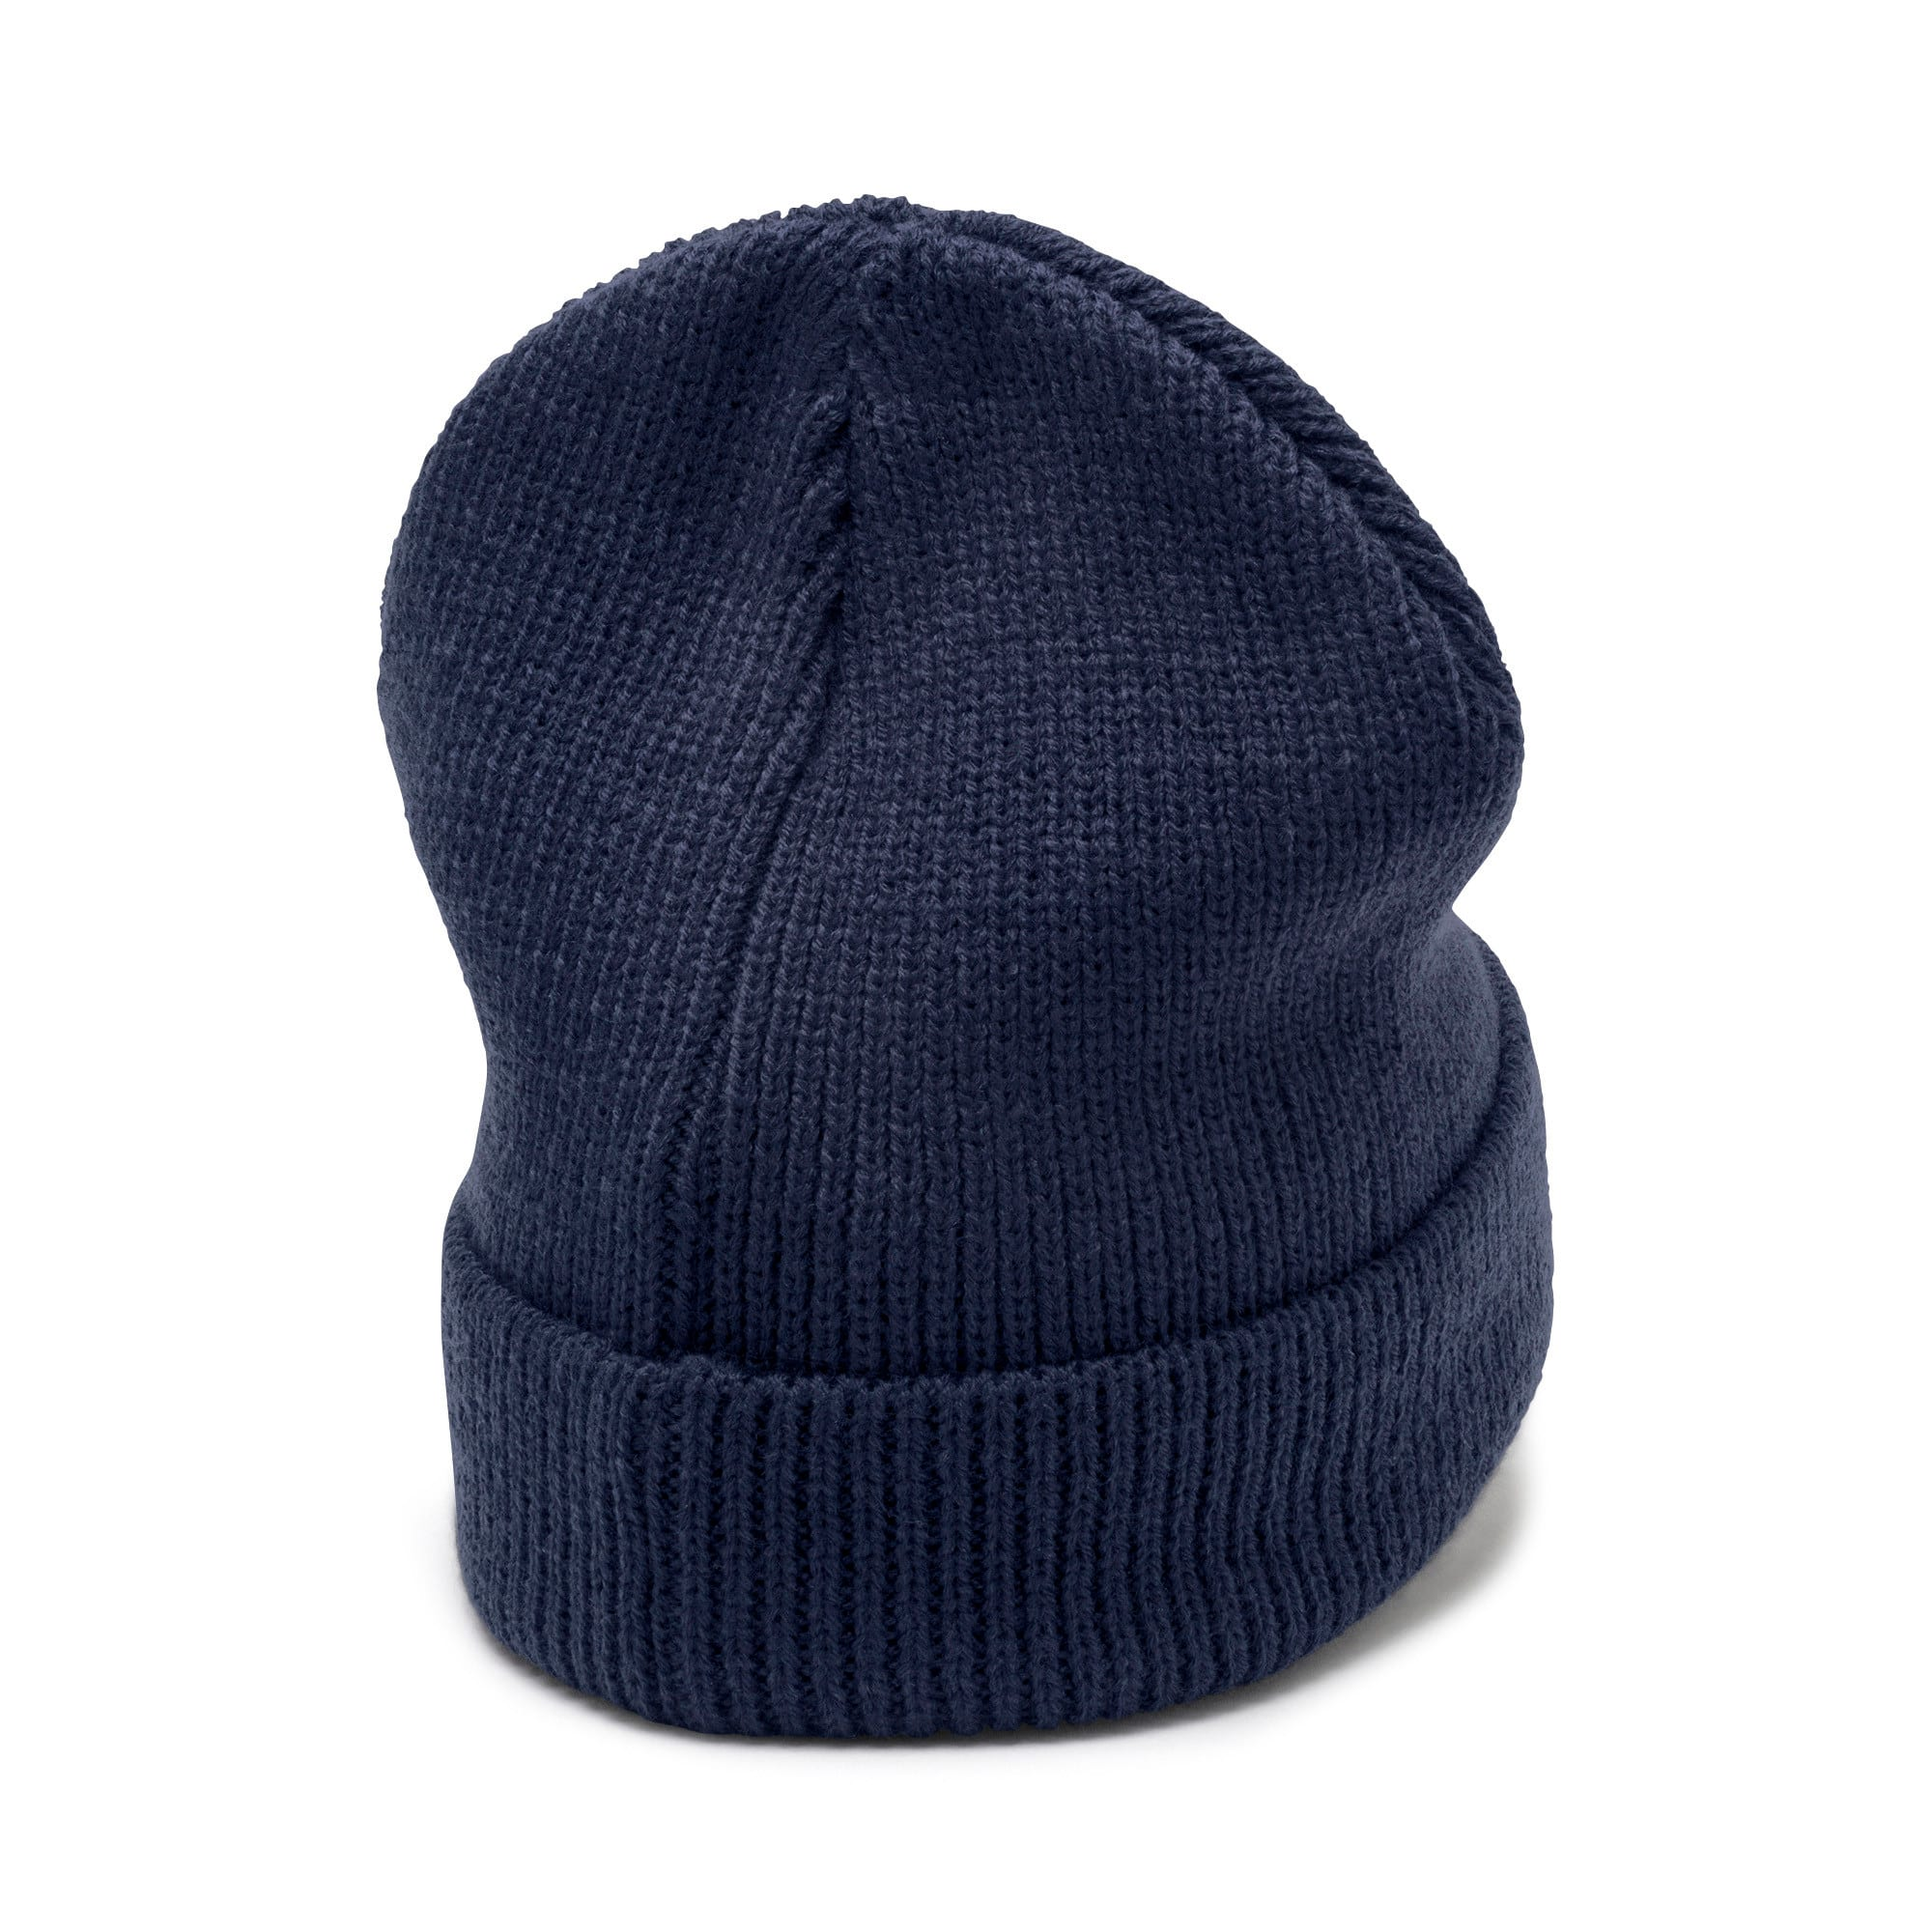 Classic Ribbed Beanie, Peacoat, large